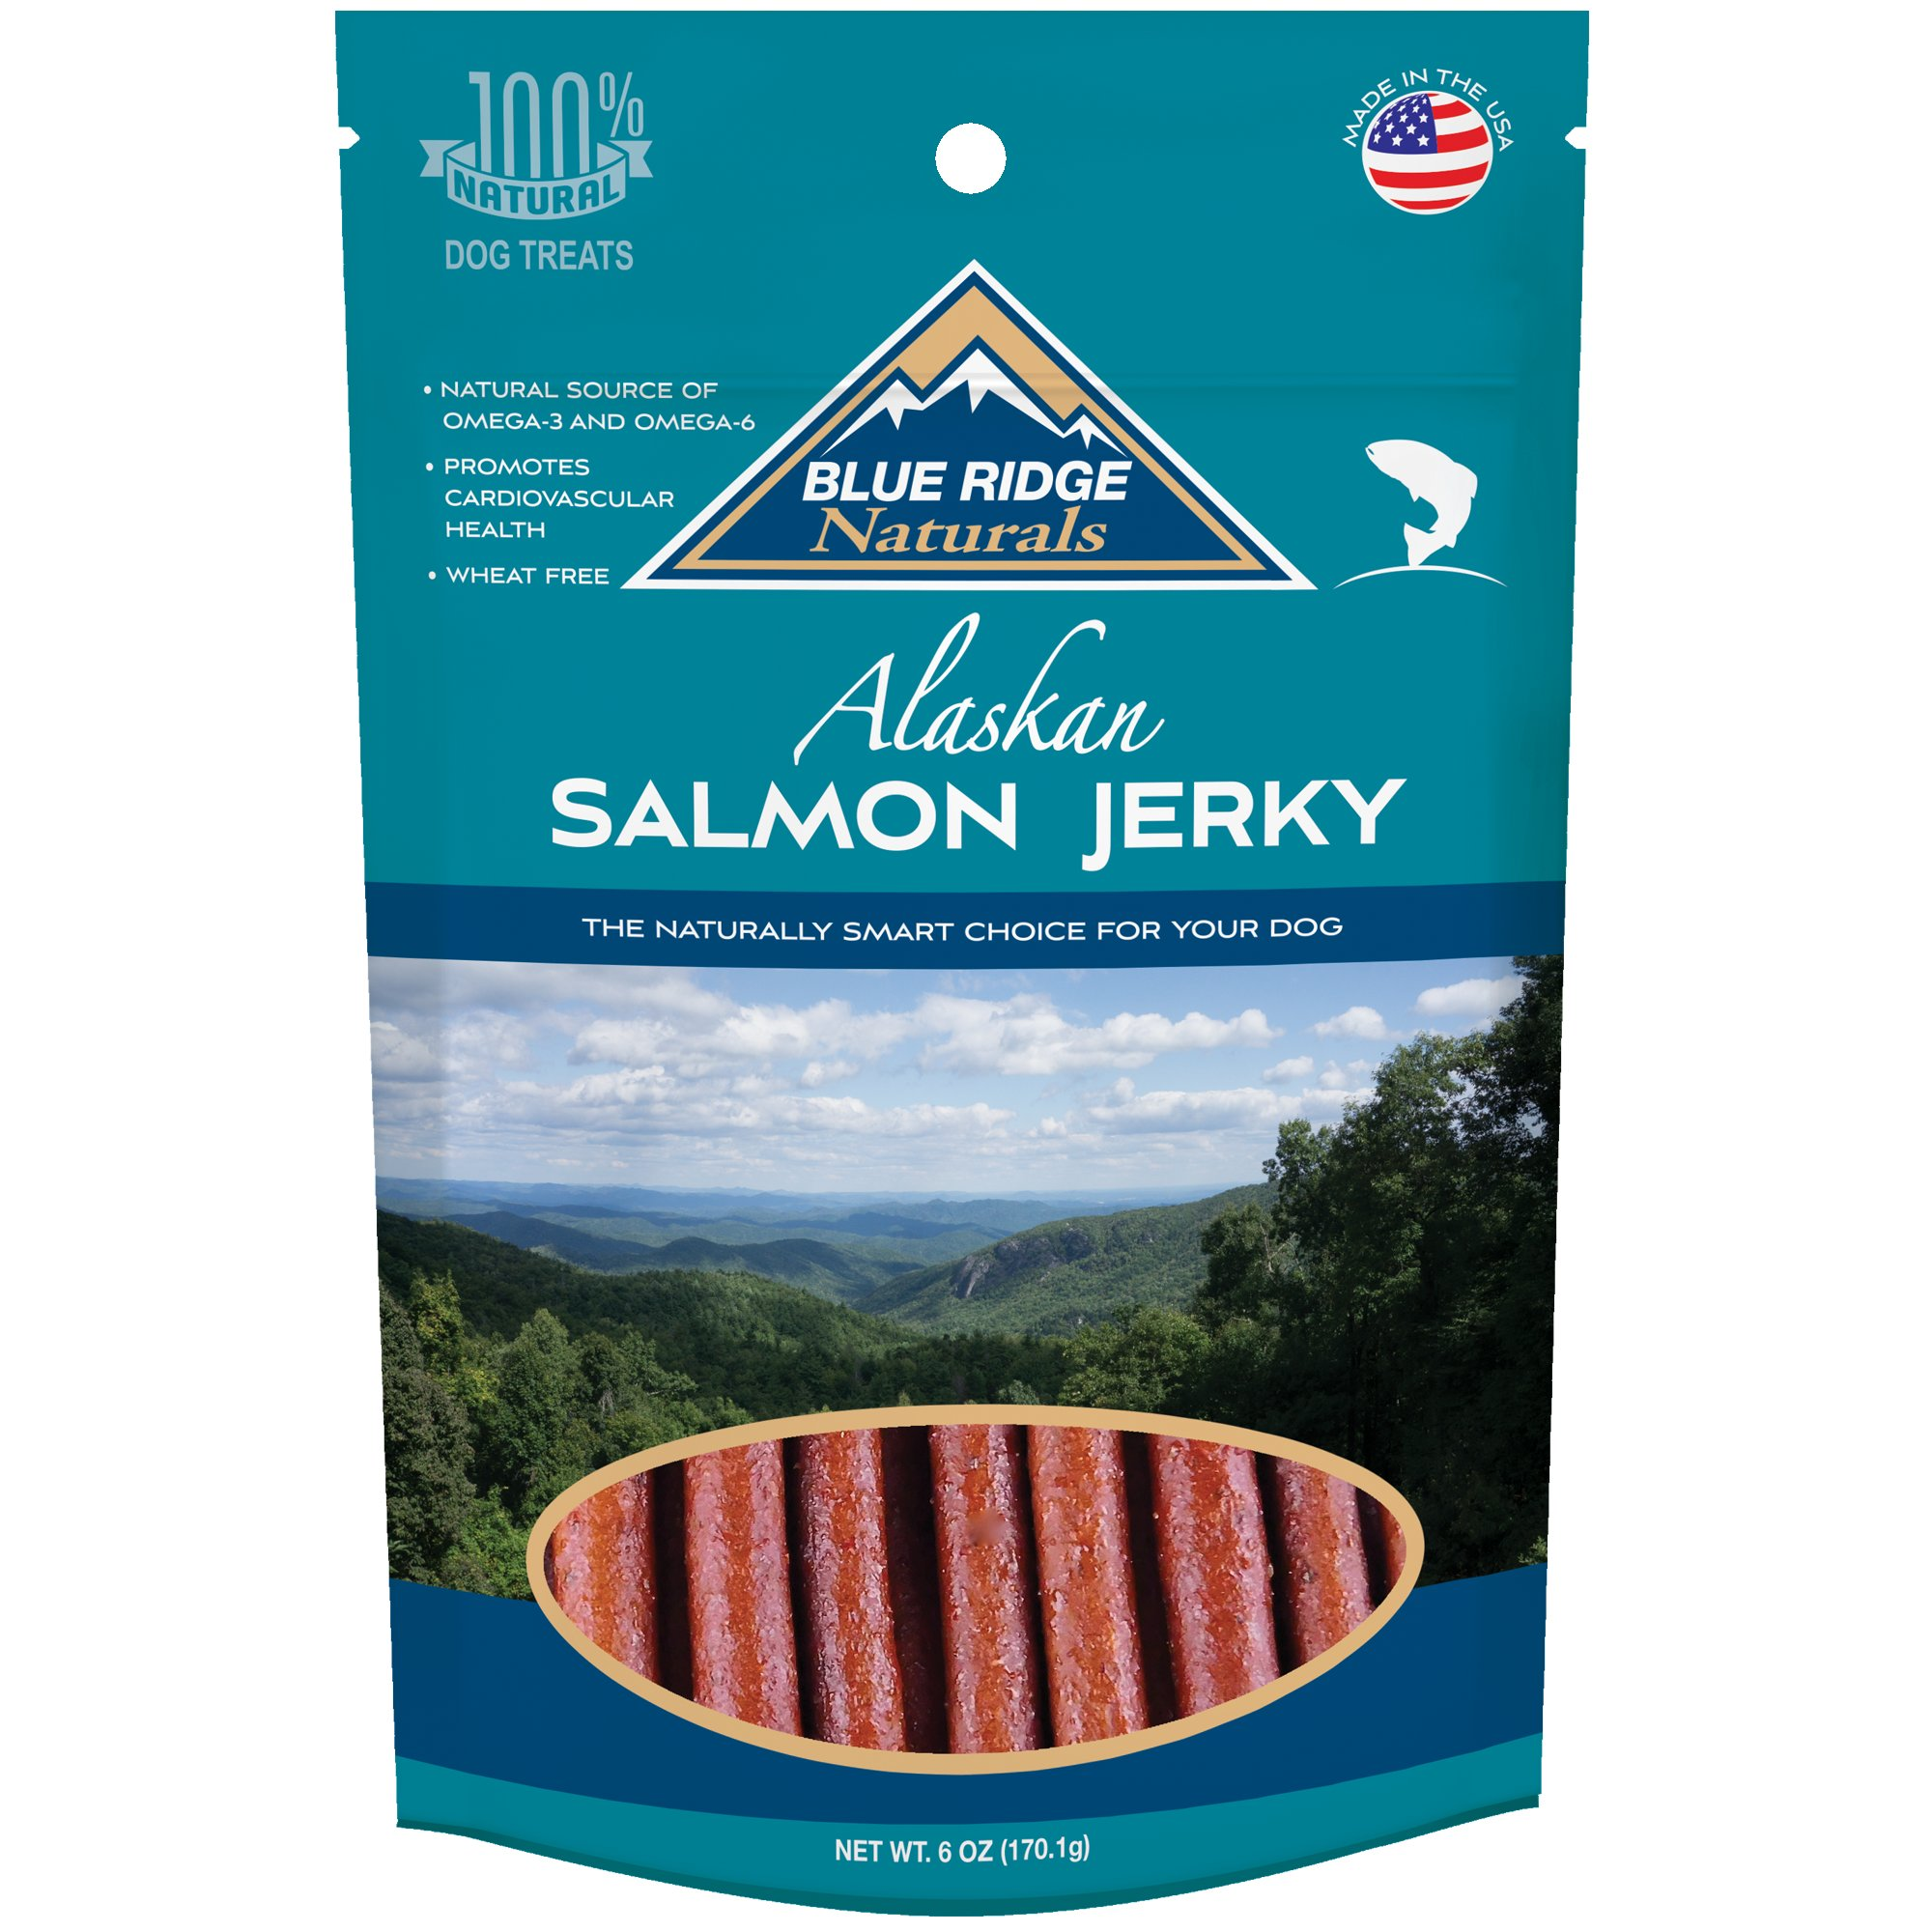 Blue Ridge Naturals Oven Baked Salmon Jerky Dog Treats